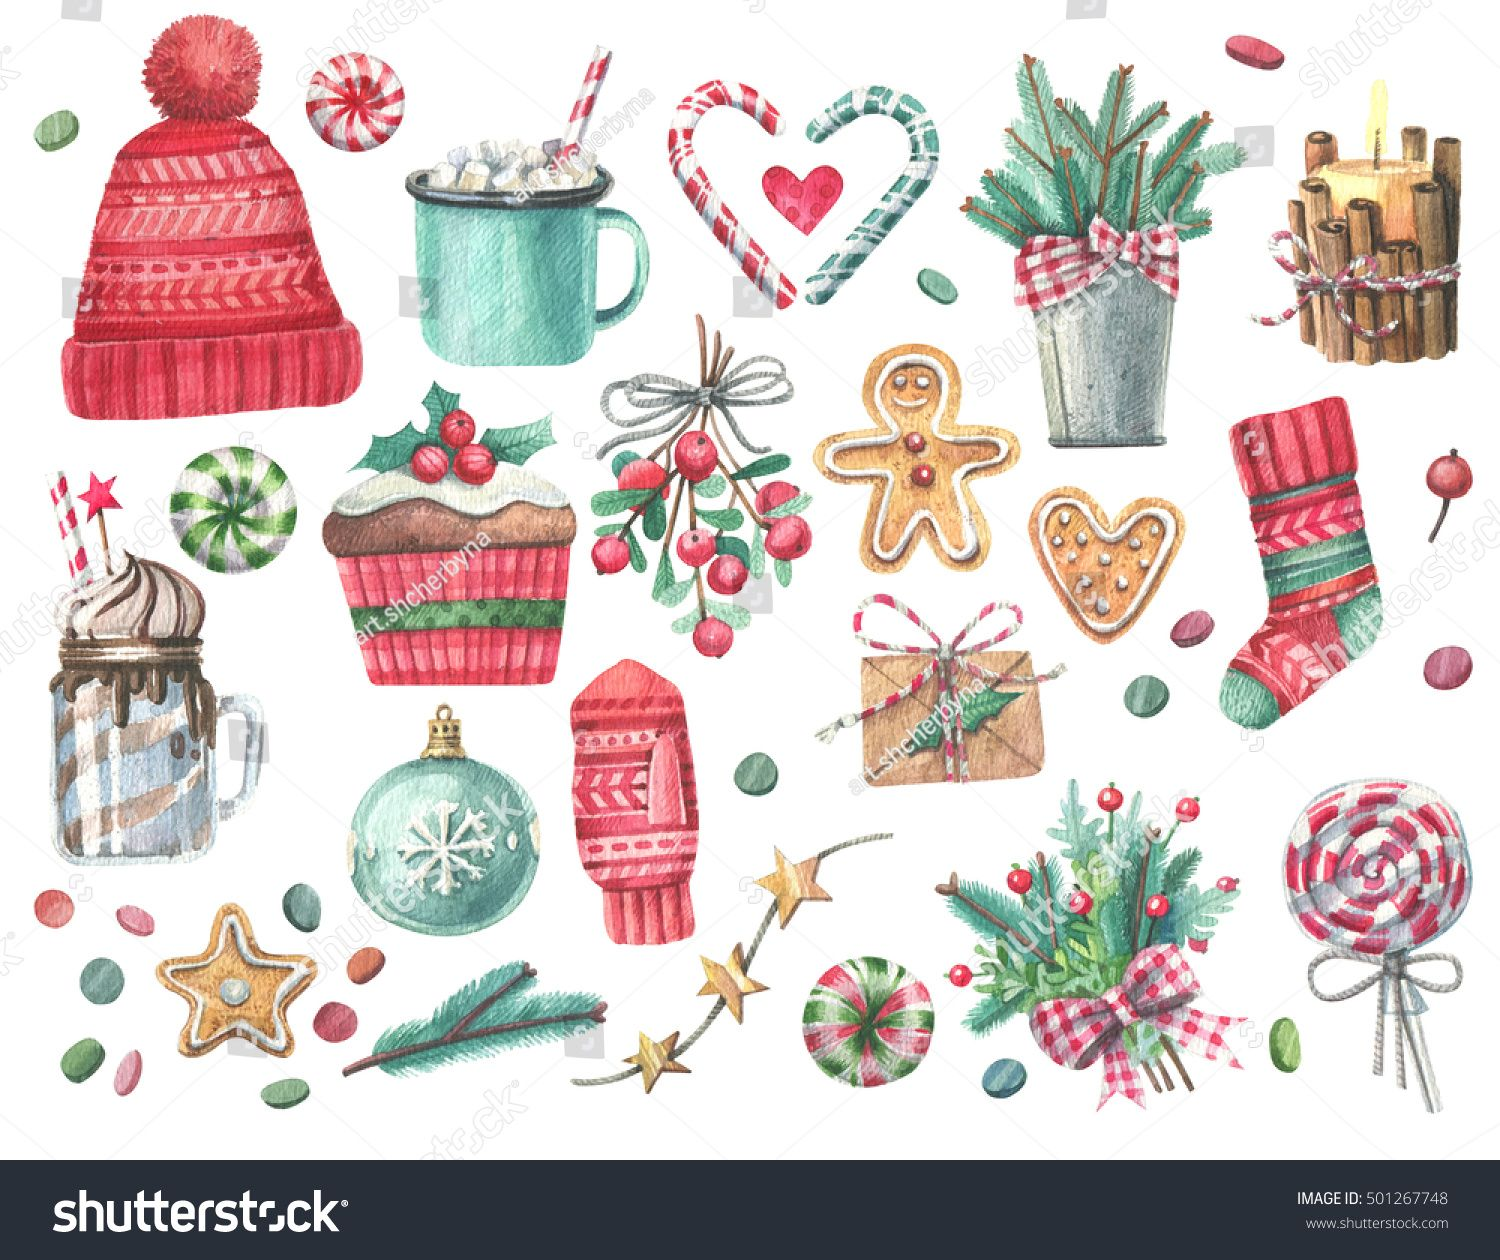 Set Of Christmas Decorations Watercolor Elements On A White Background